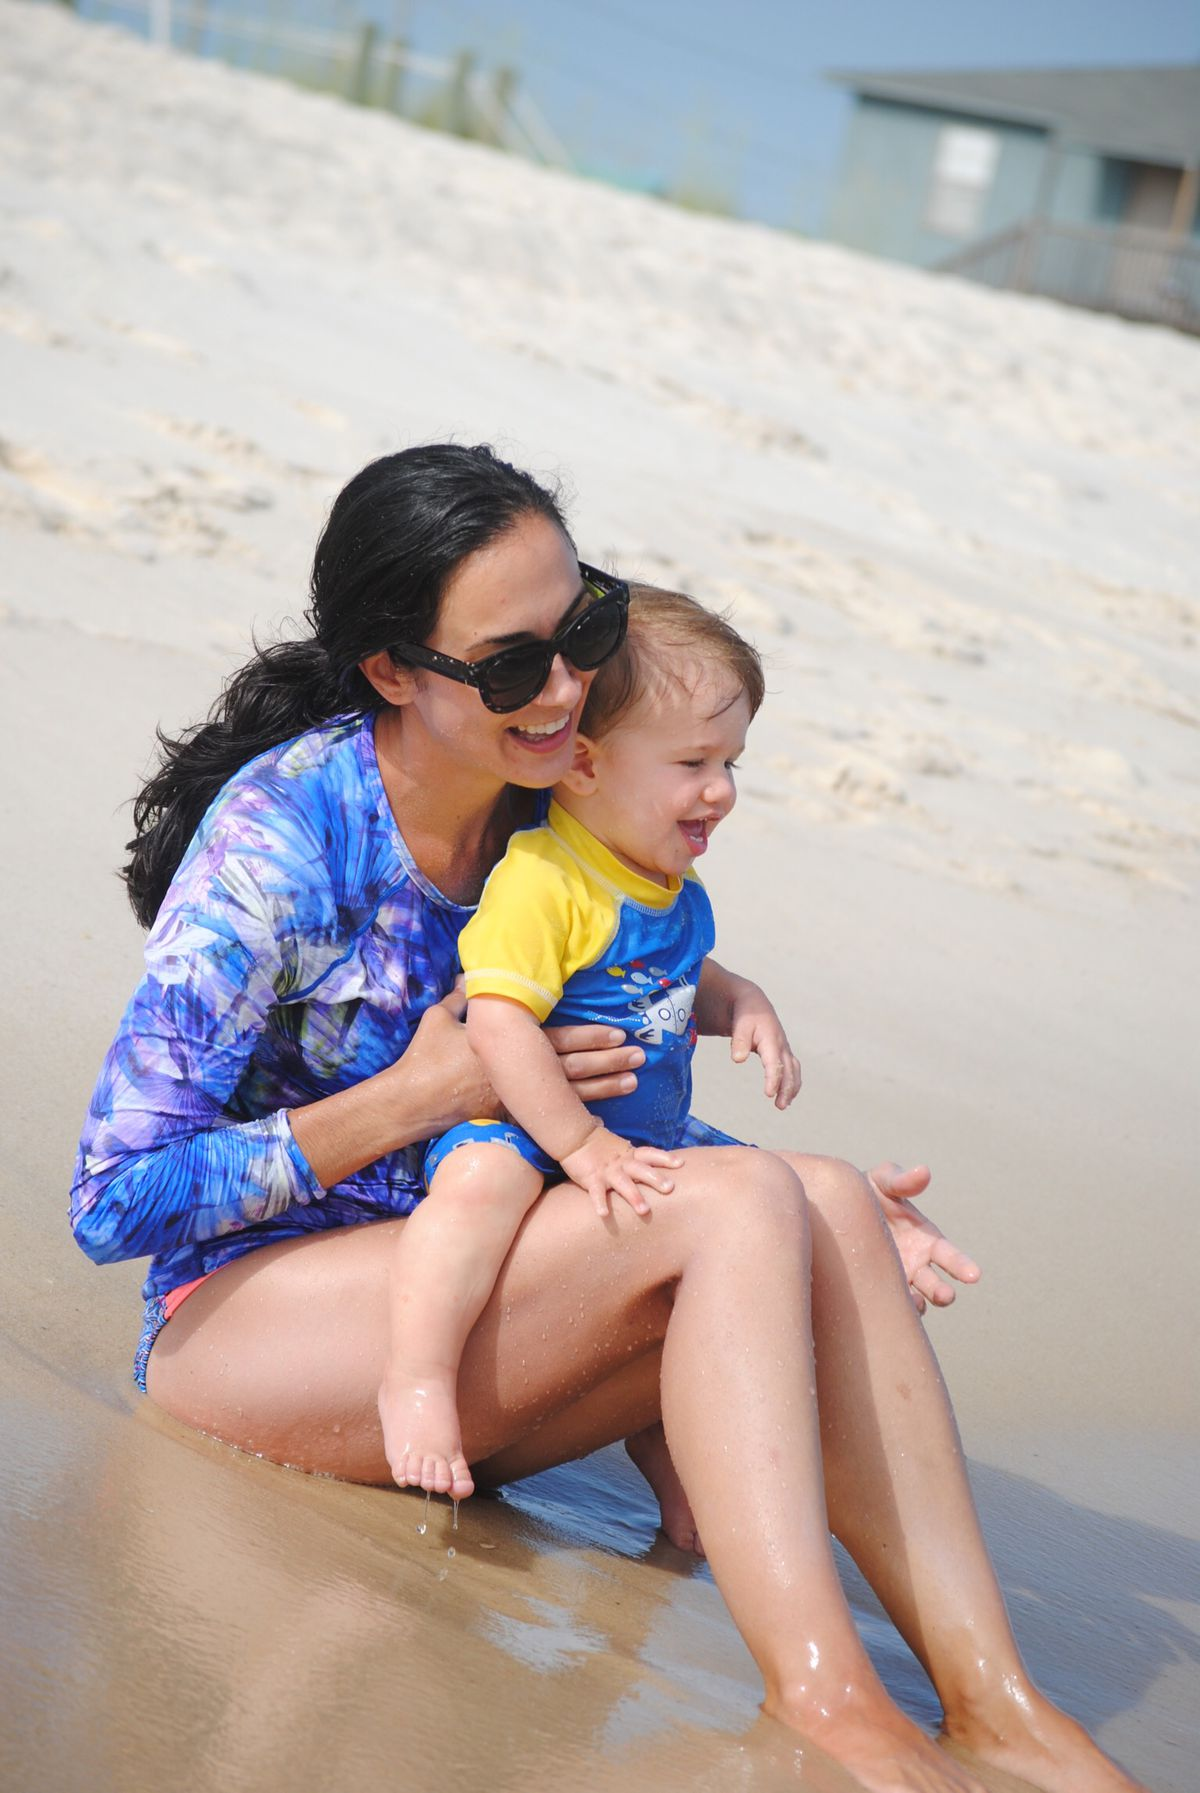 Nicole Hughes holding her son Levi on a beach outing.